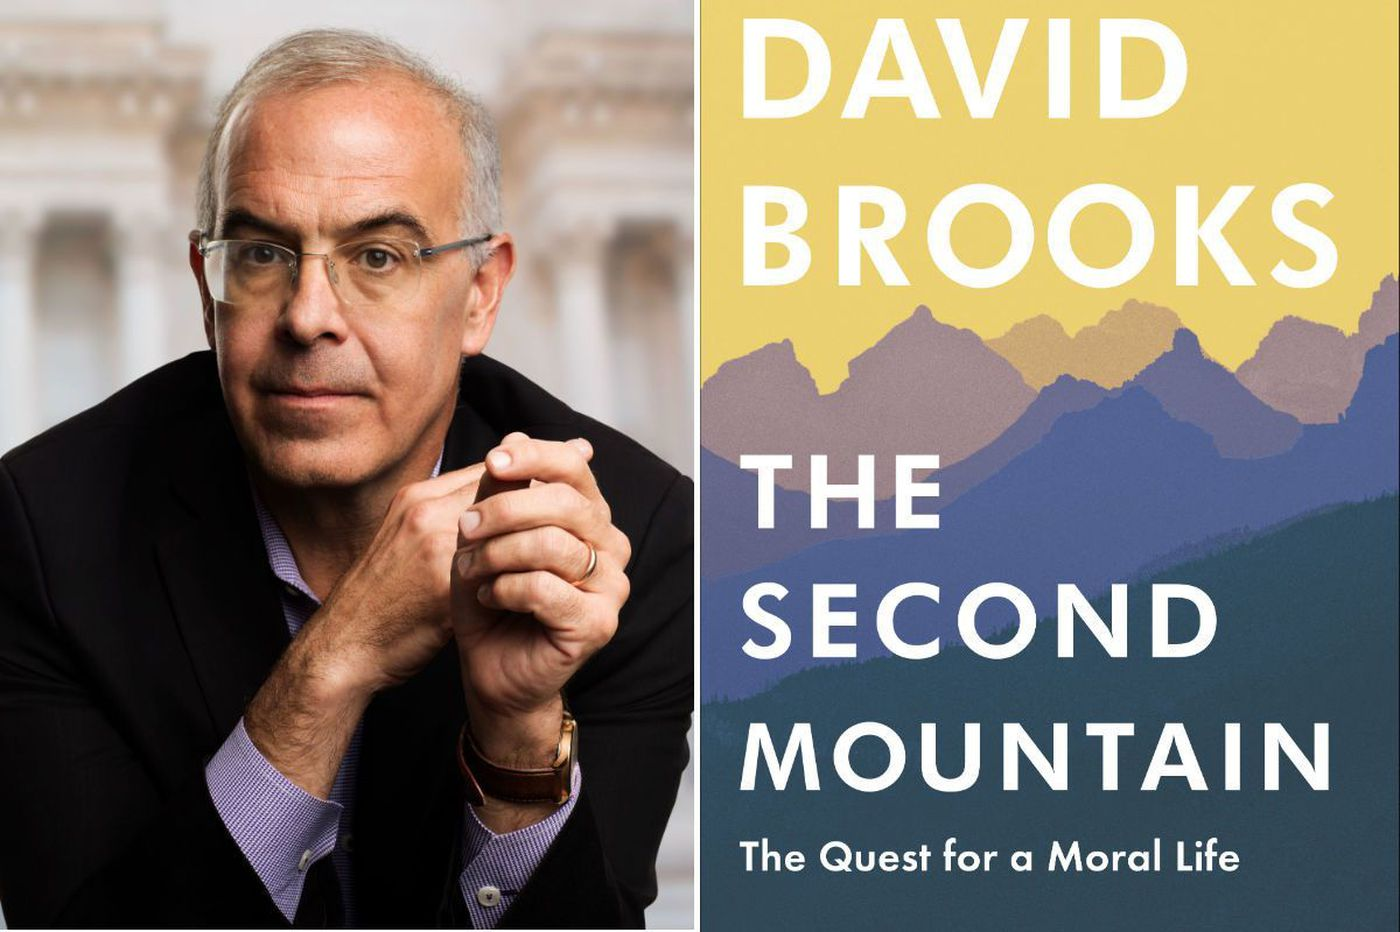 David Brooks' 'Second Mountain': A redemption story for self and society